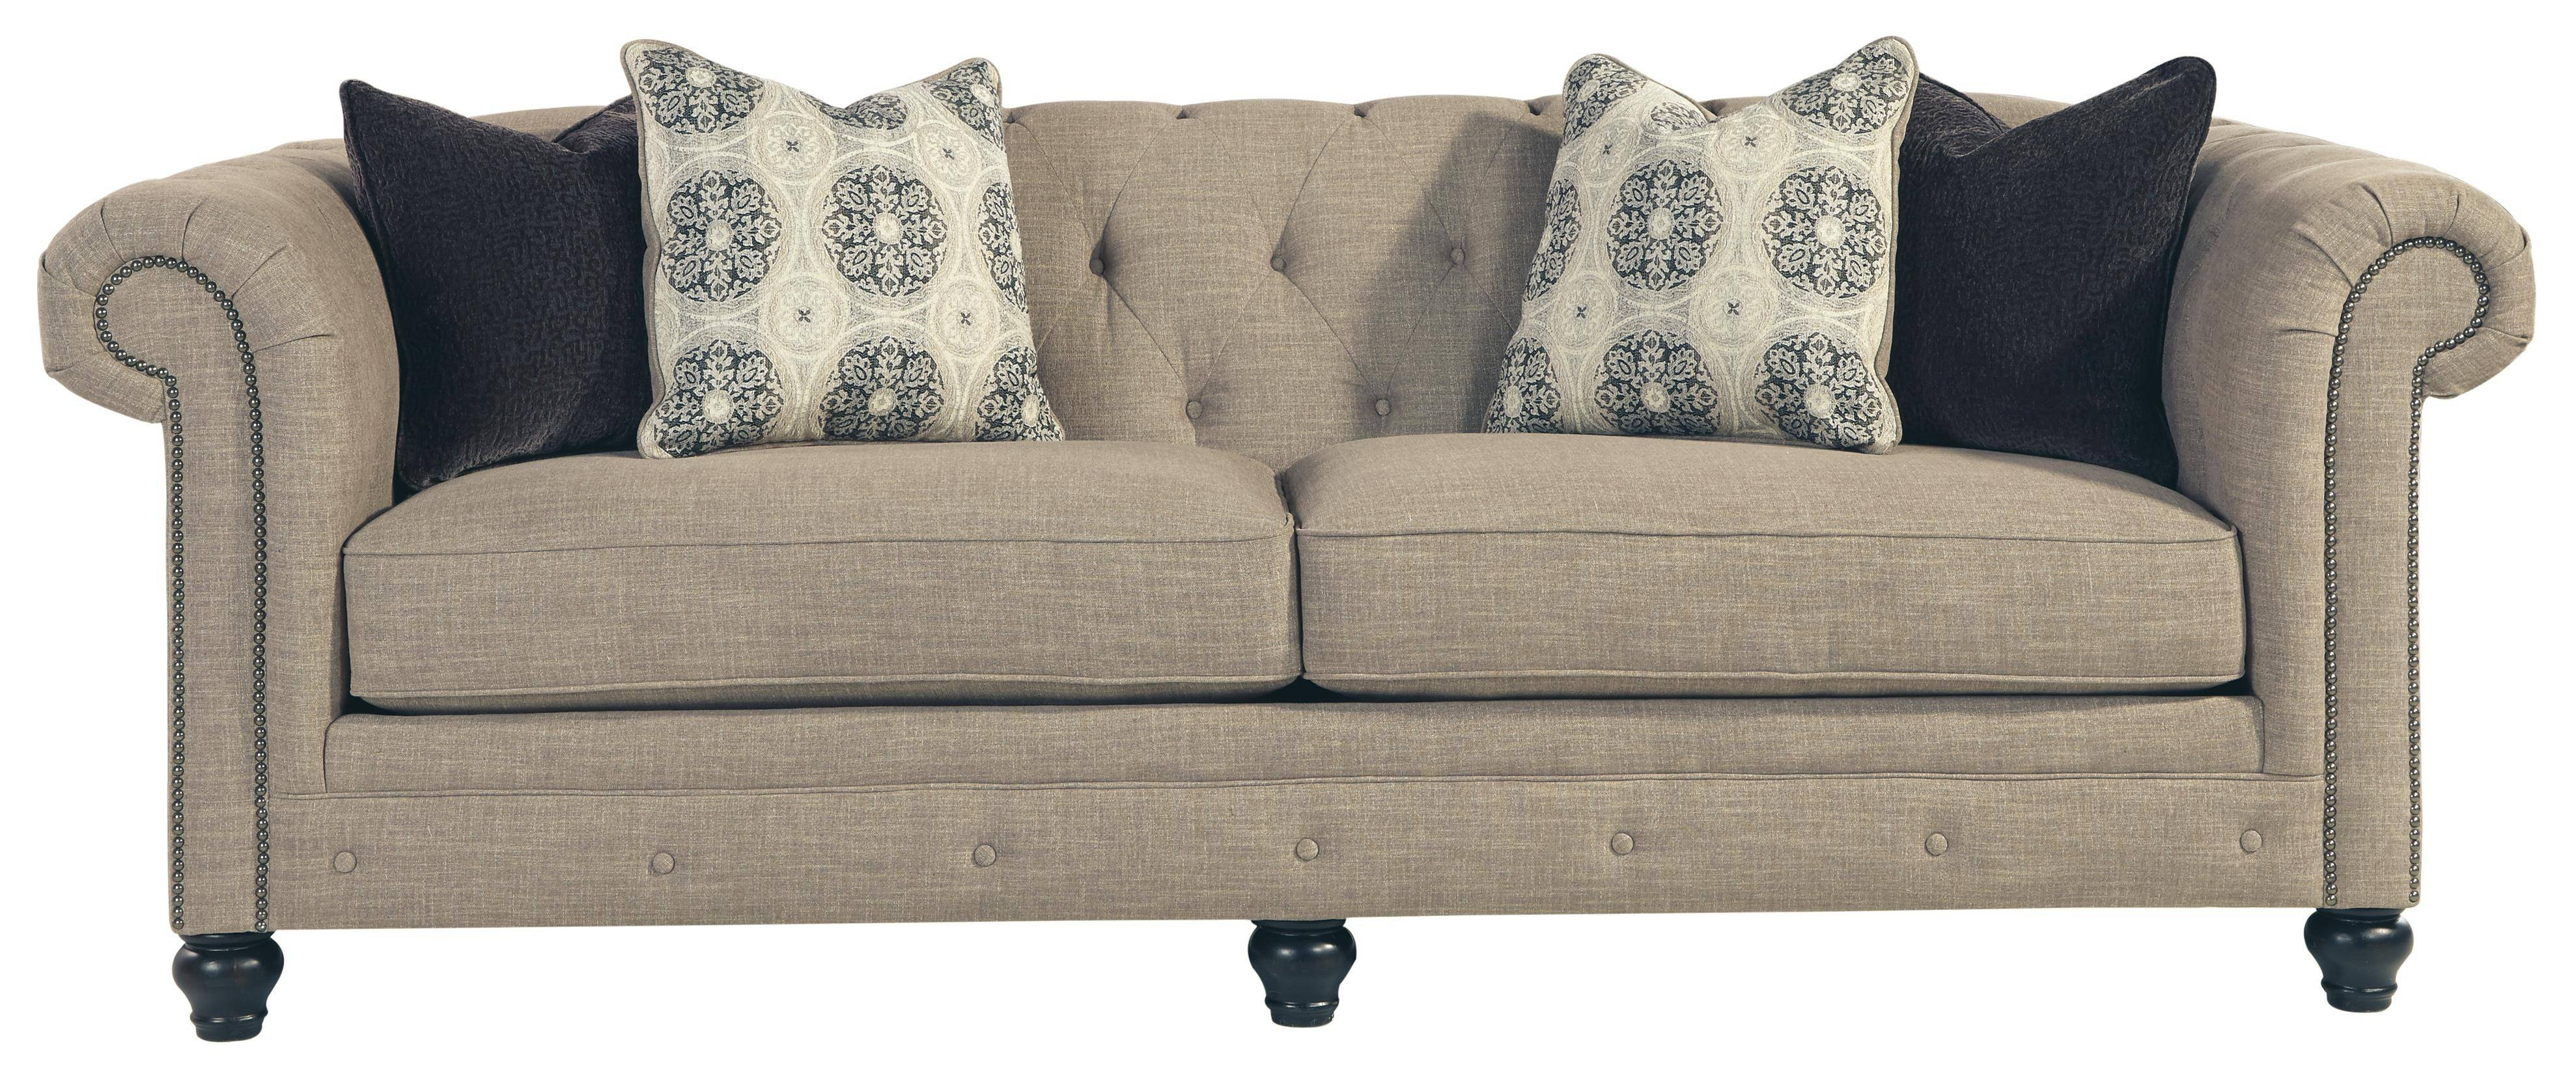 Benchcraft Azlyn Transitional Chesterfield Sofa With Linen-Blend with Ashley Tufted Sofa (Image 7 of 30)